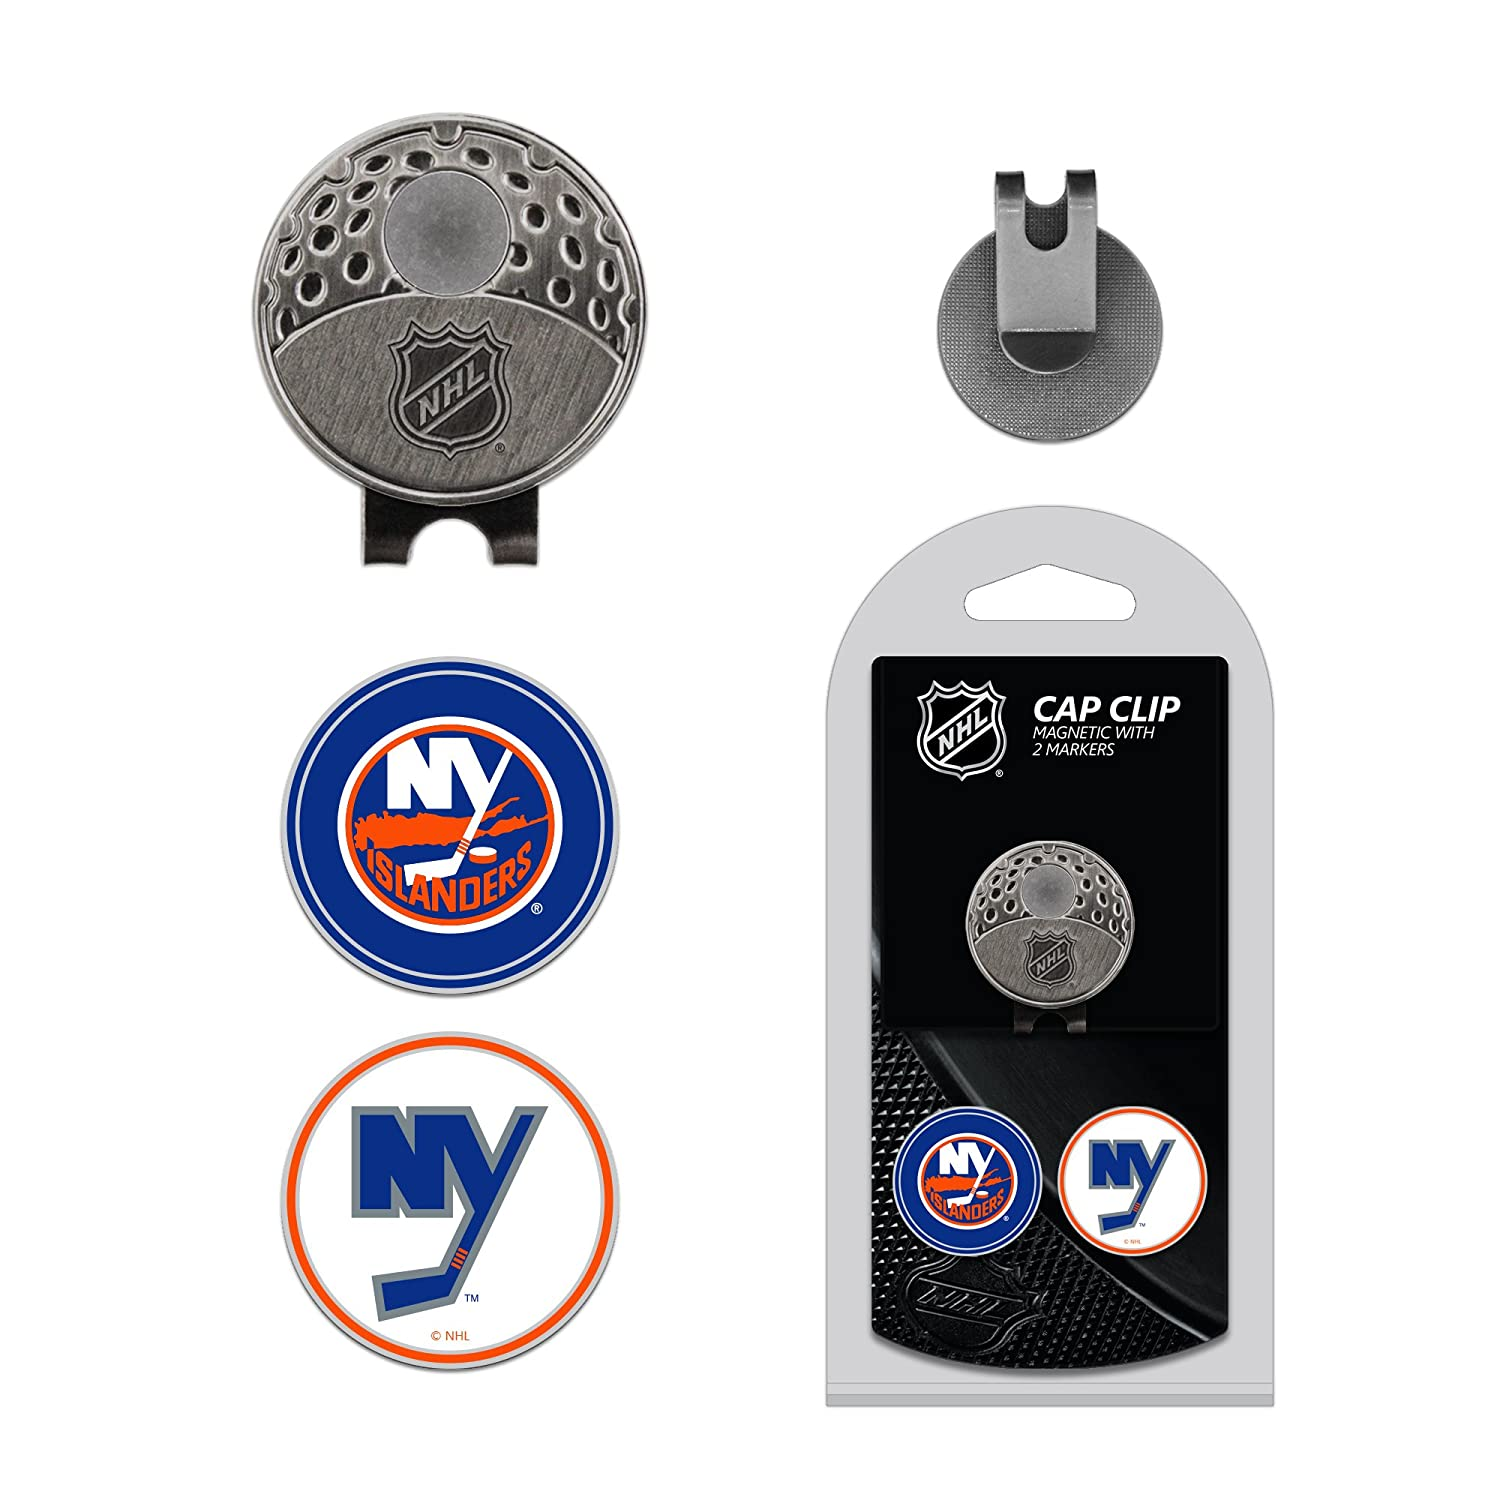 7a39b3687c2 Amazon.com   Team Golf NHL Anaheim Ducks Golf Cap Clip with 2 Removable  Double-Sided Enamel Magnetic Ball Markers